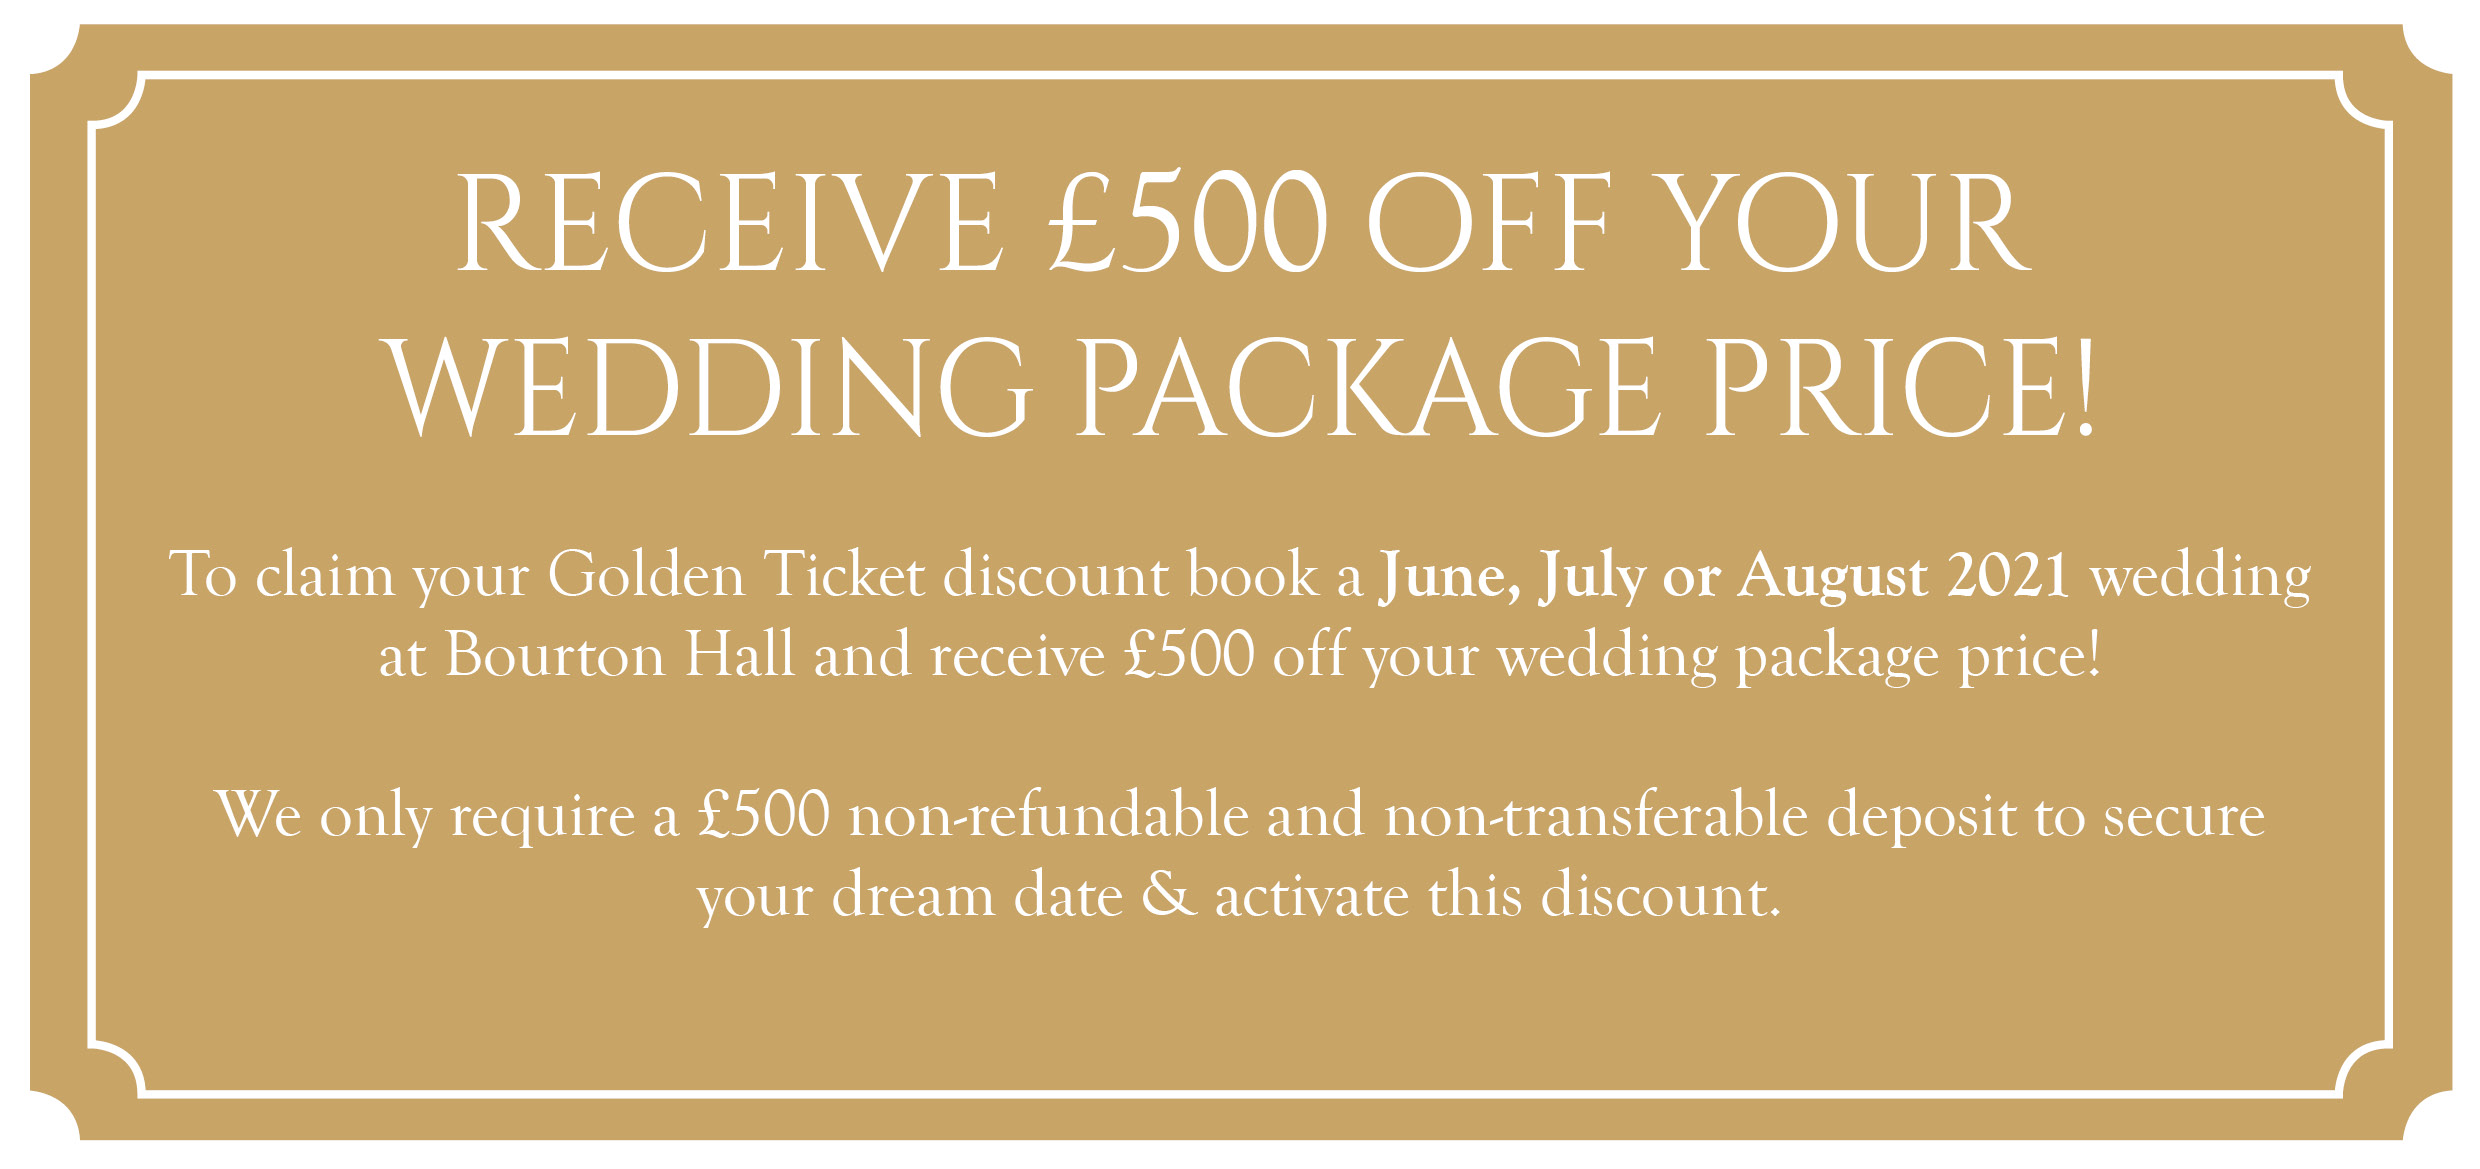 Golden Ticket -Save £500 on your Summer 2021 Wedding at Bourton Hall